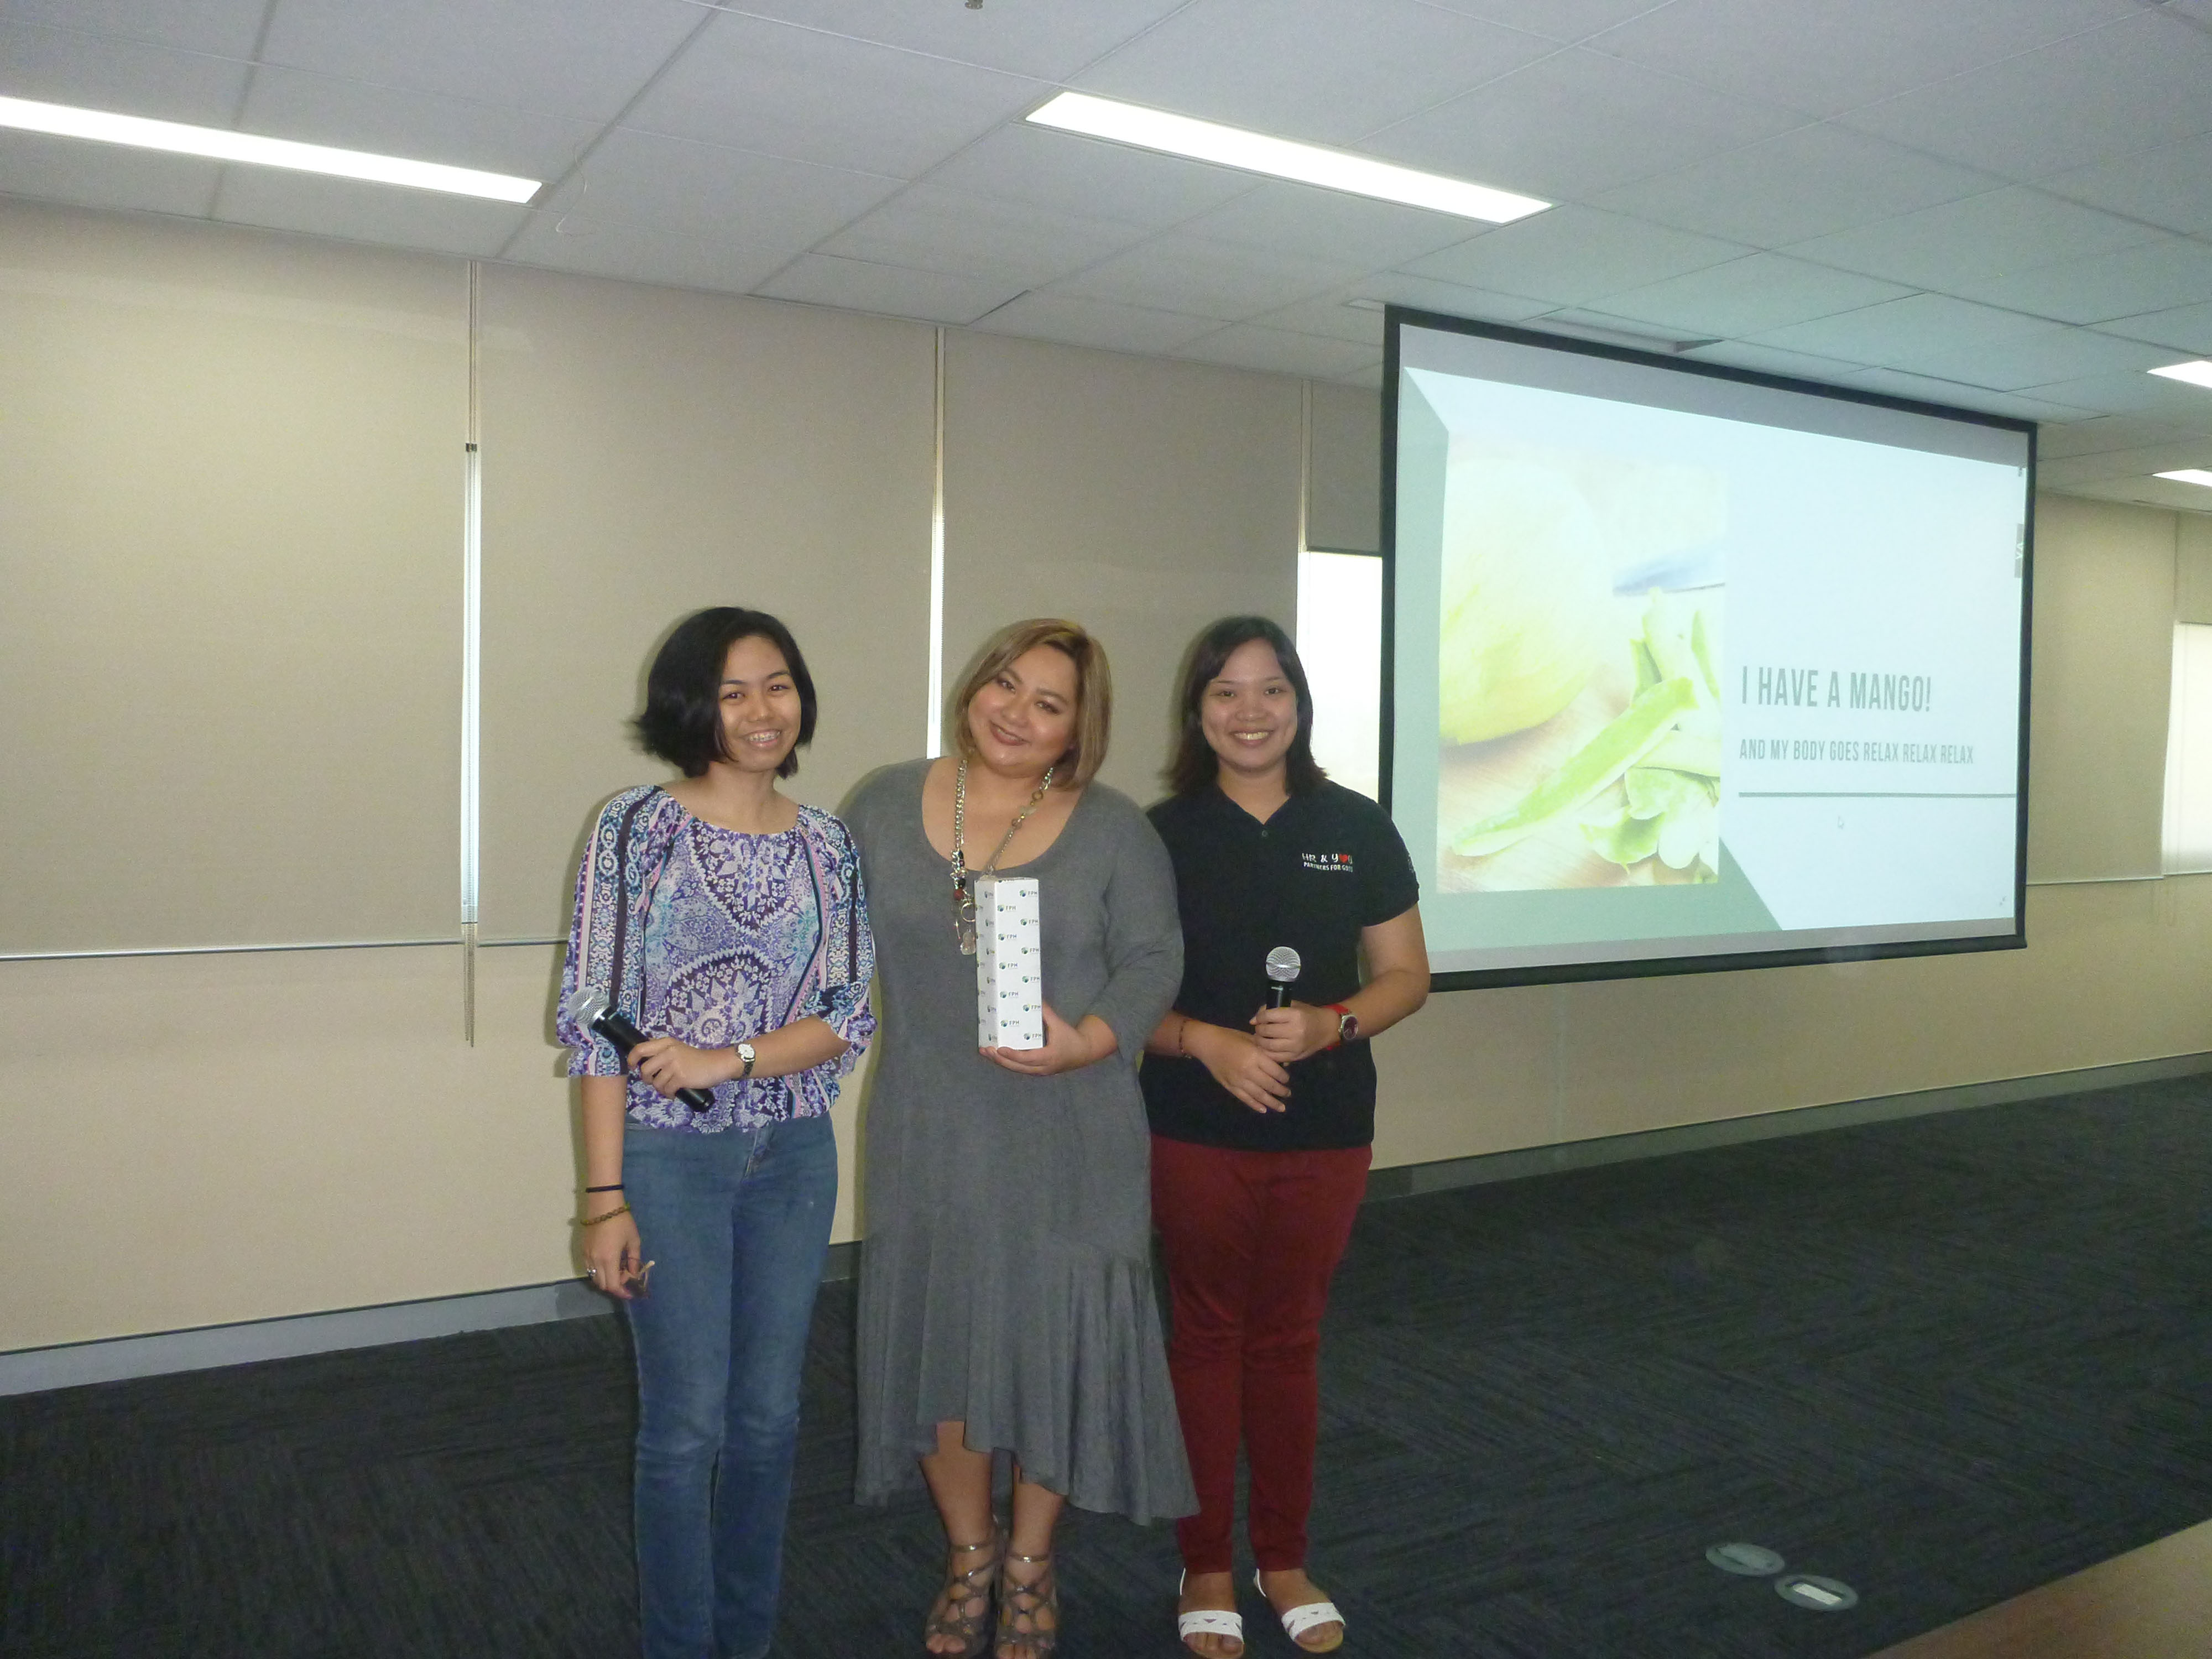 Event hosts Clowee Licsi of First Gen and Ayesha Volpane of FPH with resource person Kimberly Lu